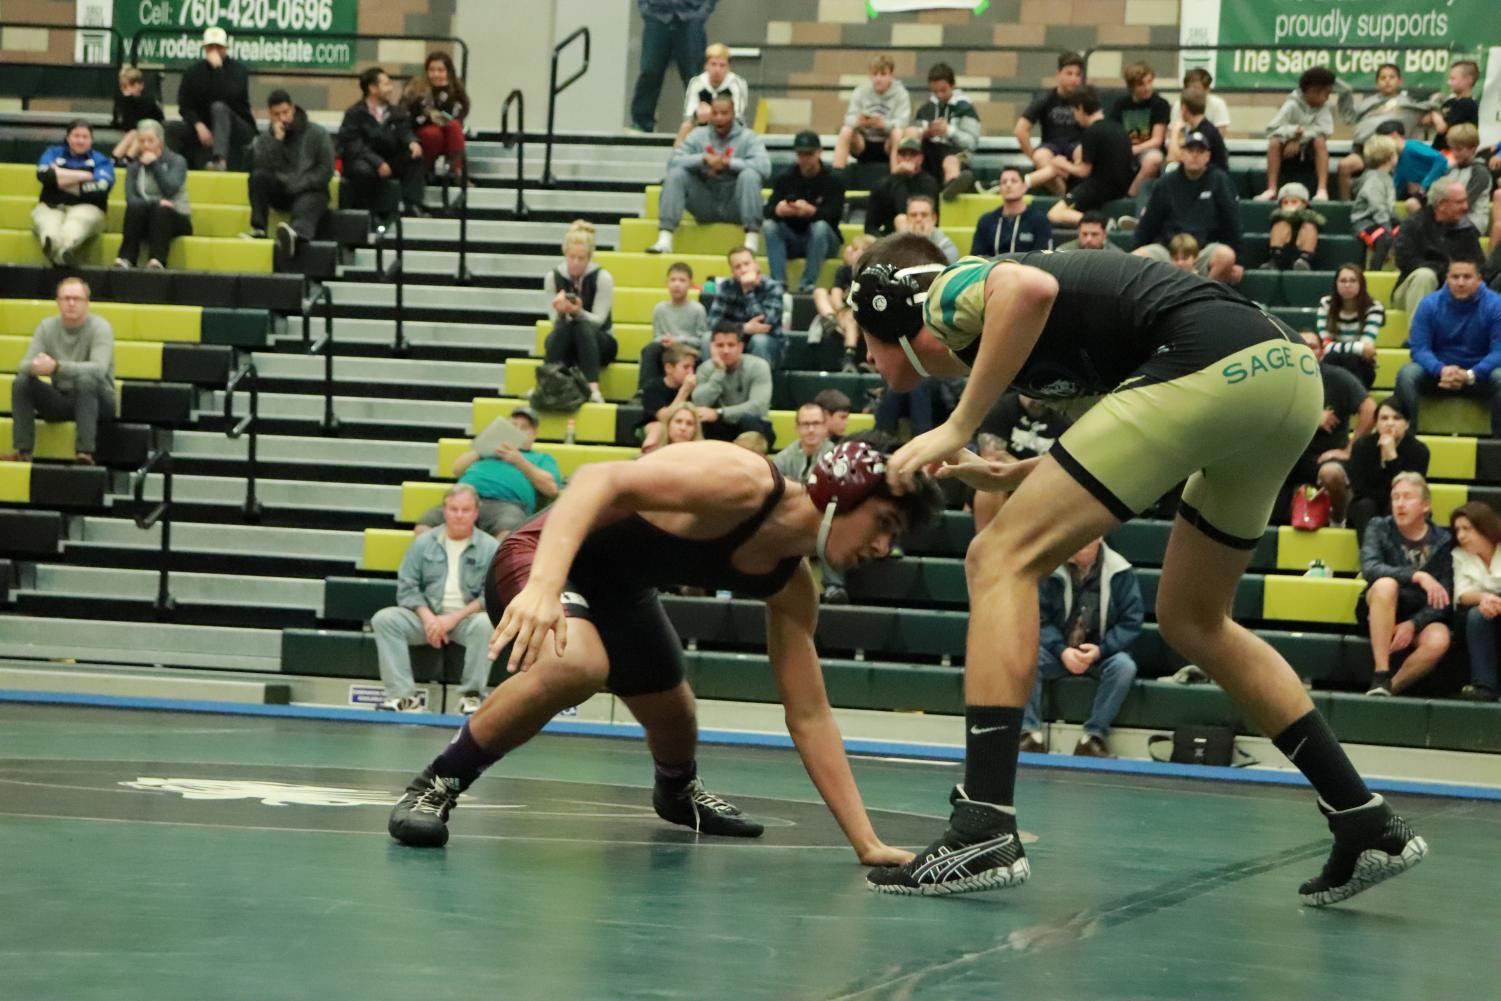 Junior+Miguel+Rojas+prepares+for+his+next+move.+Miguel+wrestled+in+the+138+weight+class+for+the+Thursday+duel.